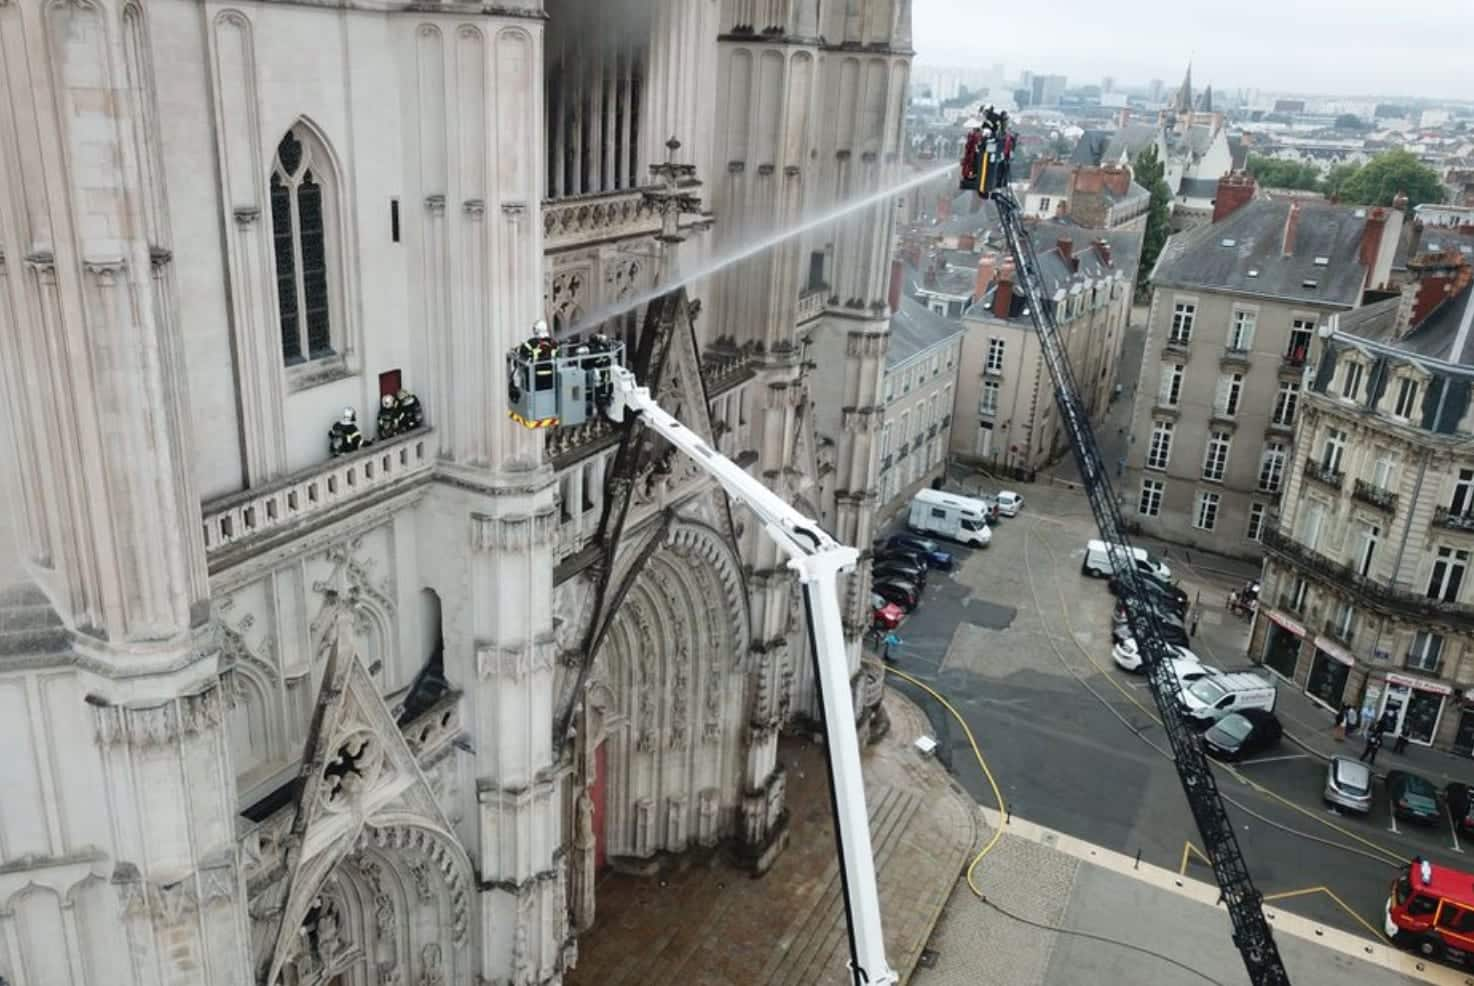 Nantes cathedral fire seen through firefighter's drone